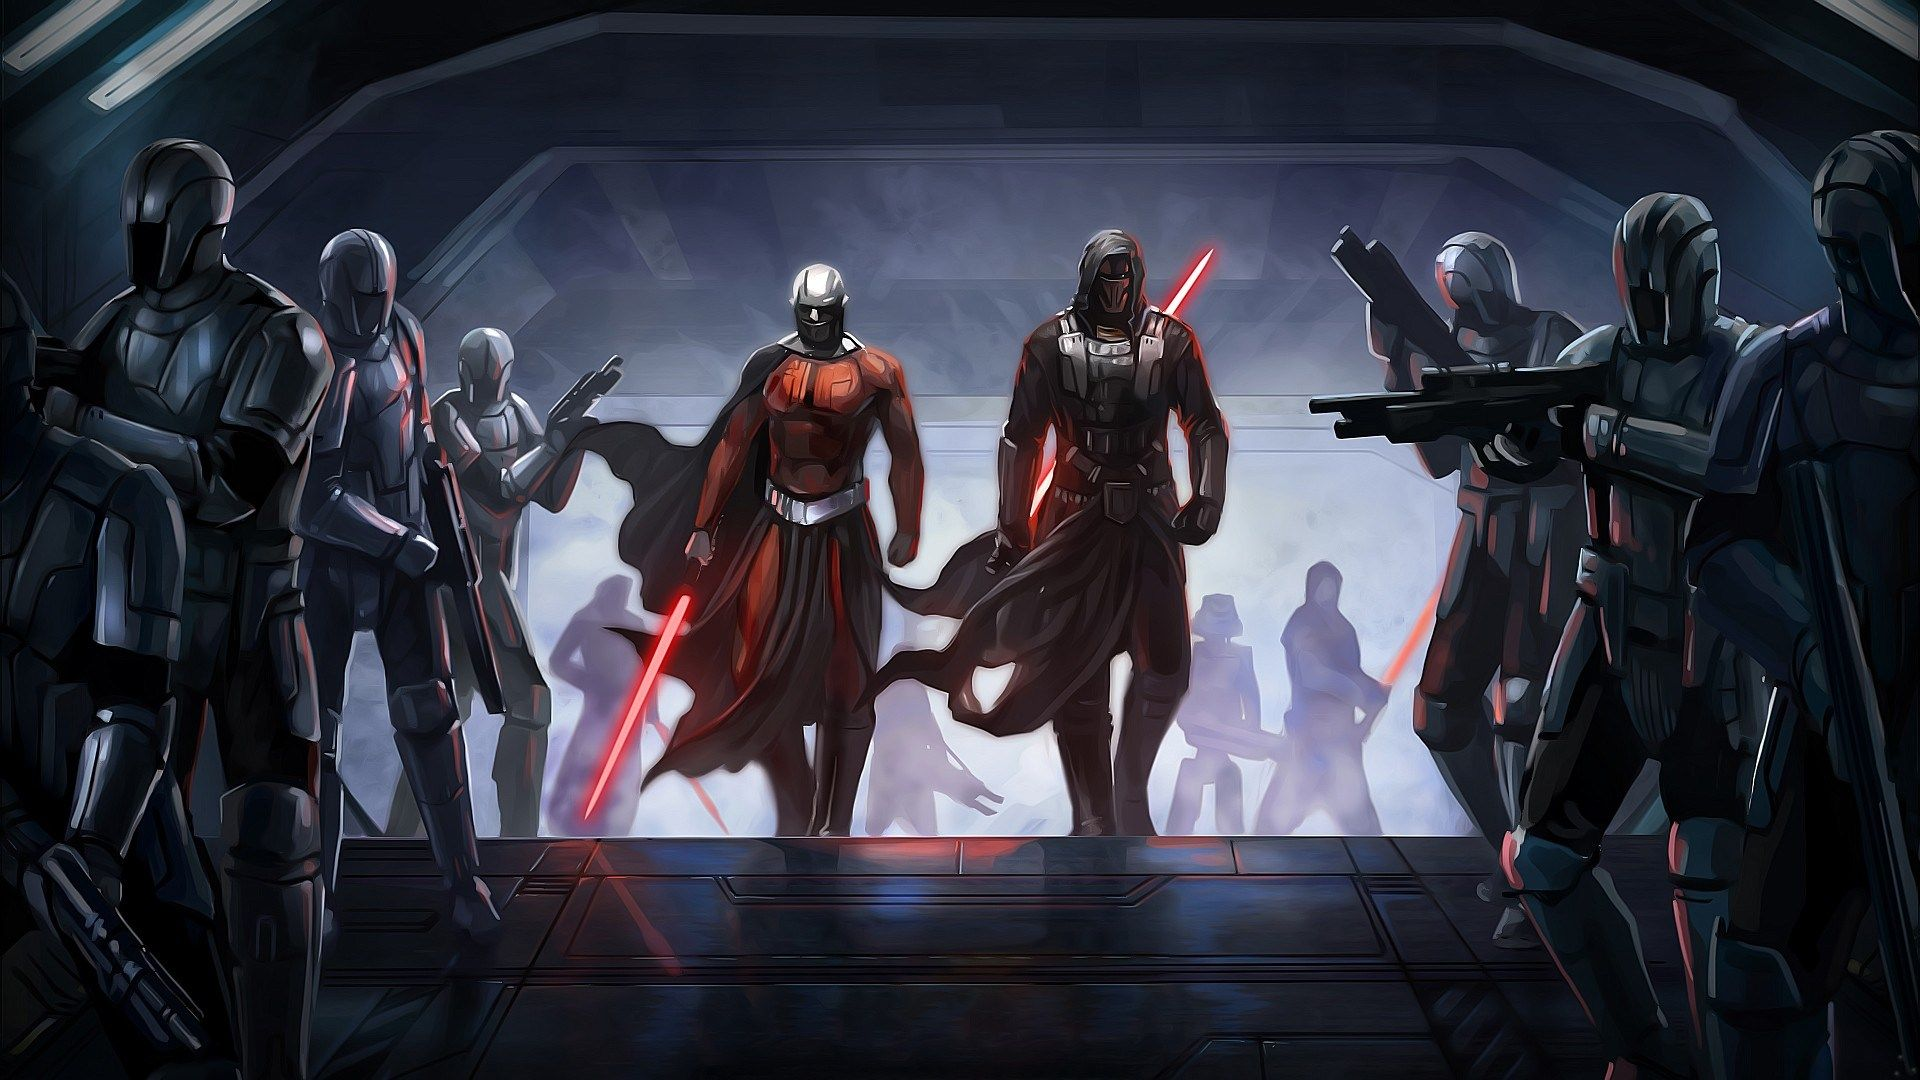 1920x1080 Px Star Wars The Old Republic Image High Definition Backgrounds By Thane Sinclair Star Wars The Old Star Wars Kotor Star Wars Sith